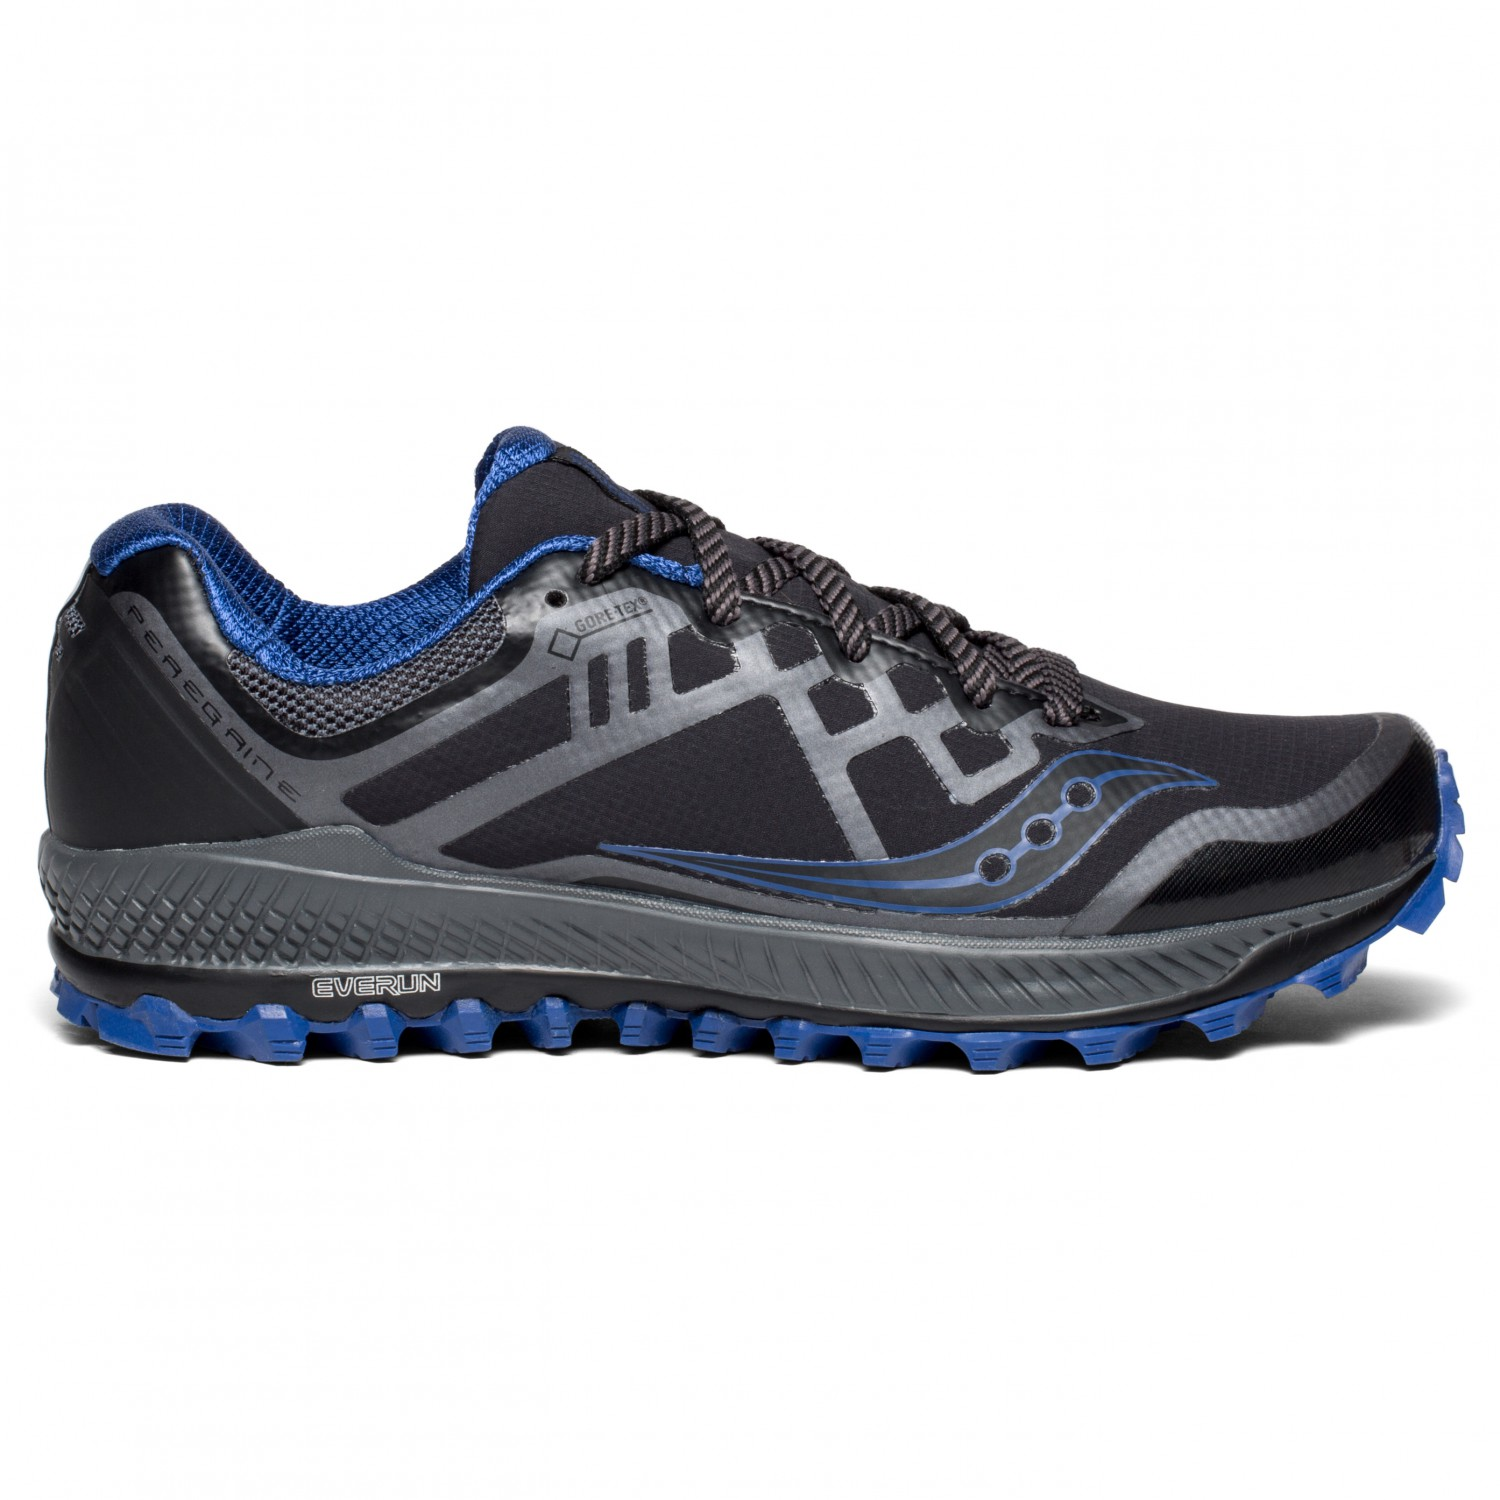 watch a7301 2ba73 Saucony - Peregrine 8 GTX - Scarpe per trail running - Black / Grey / Blue  | 8,5 (US)